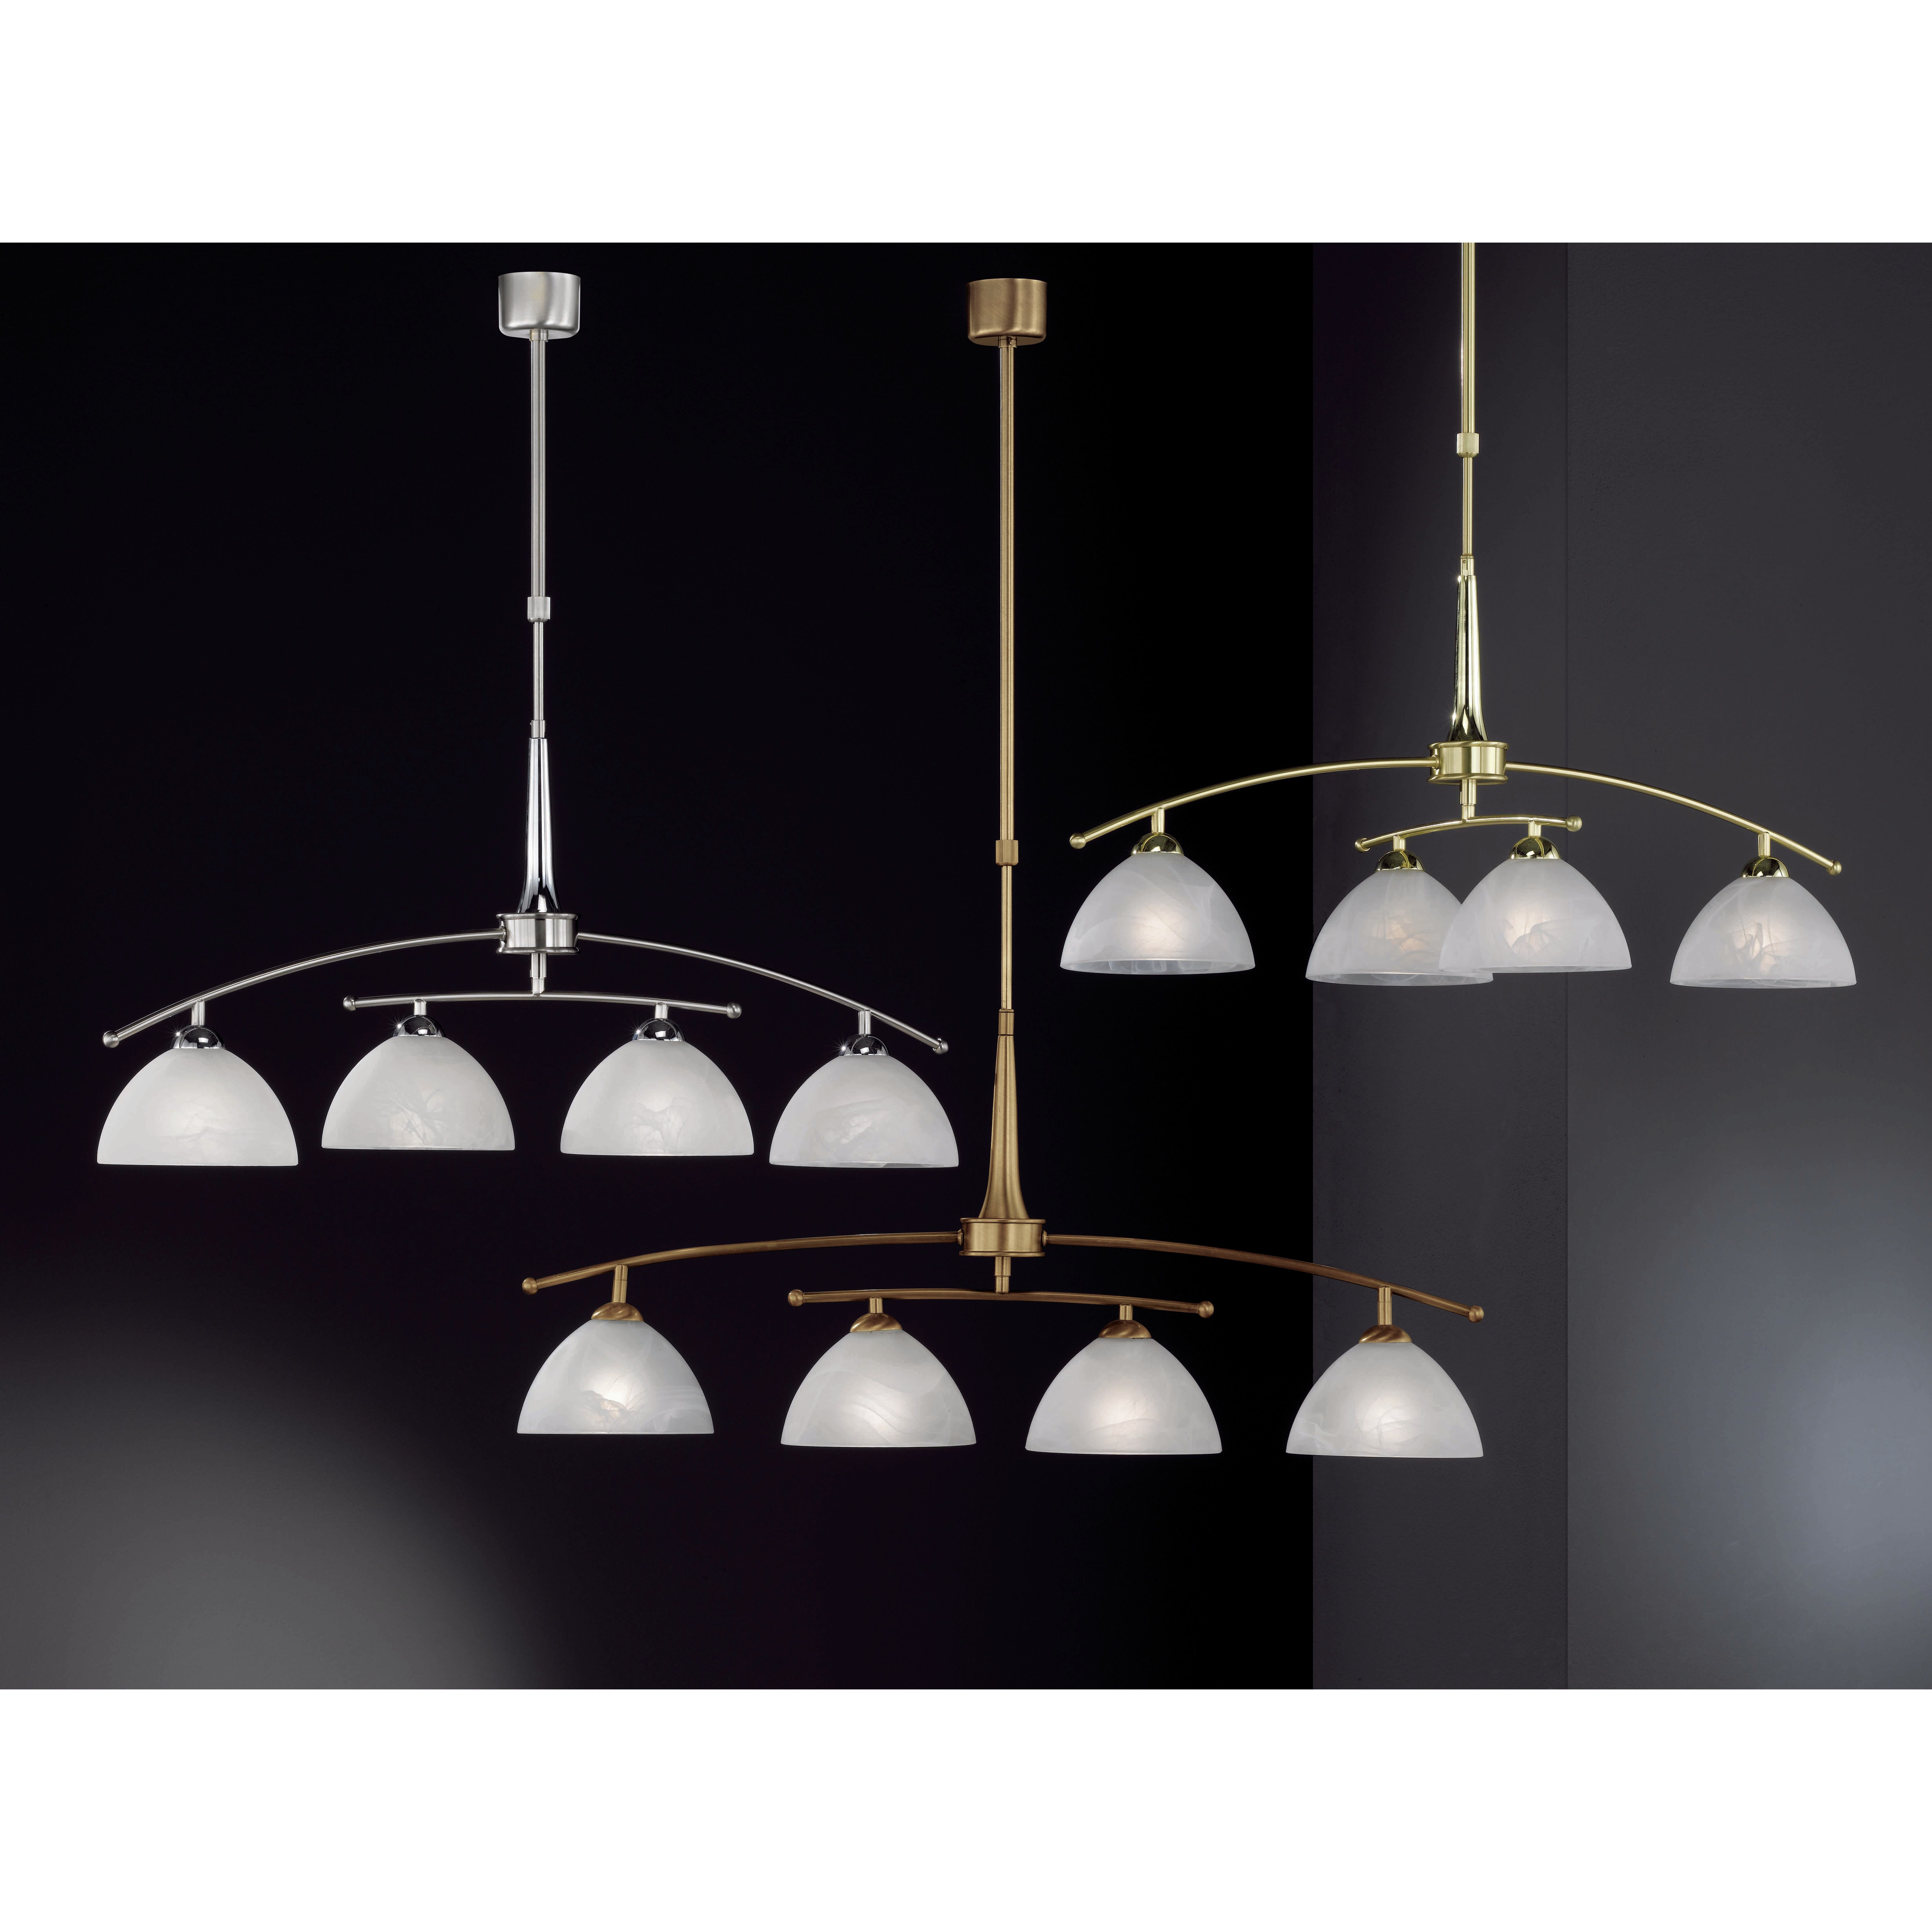 Prestige 4 Light Kitchen Island Pendant